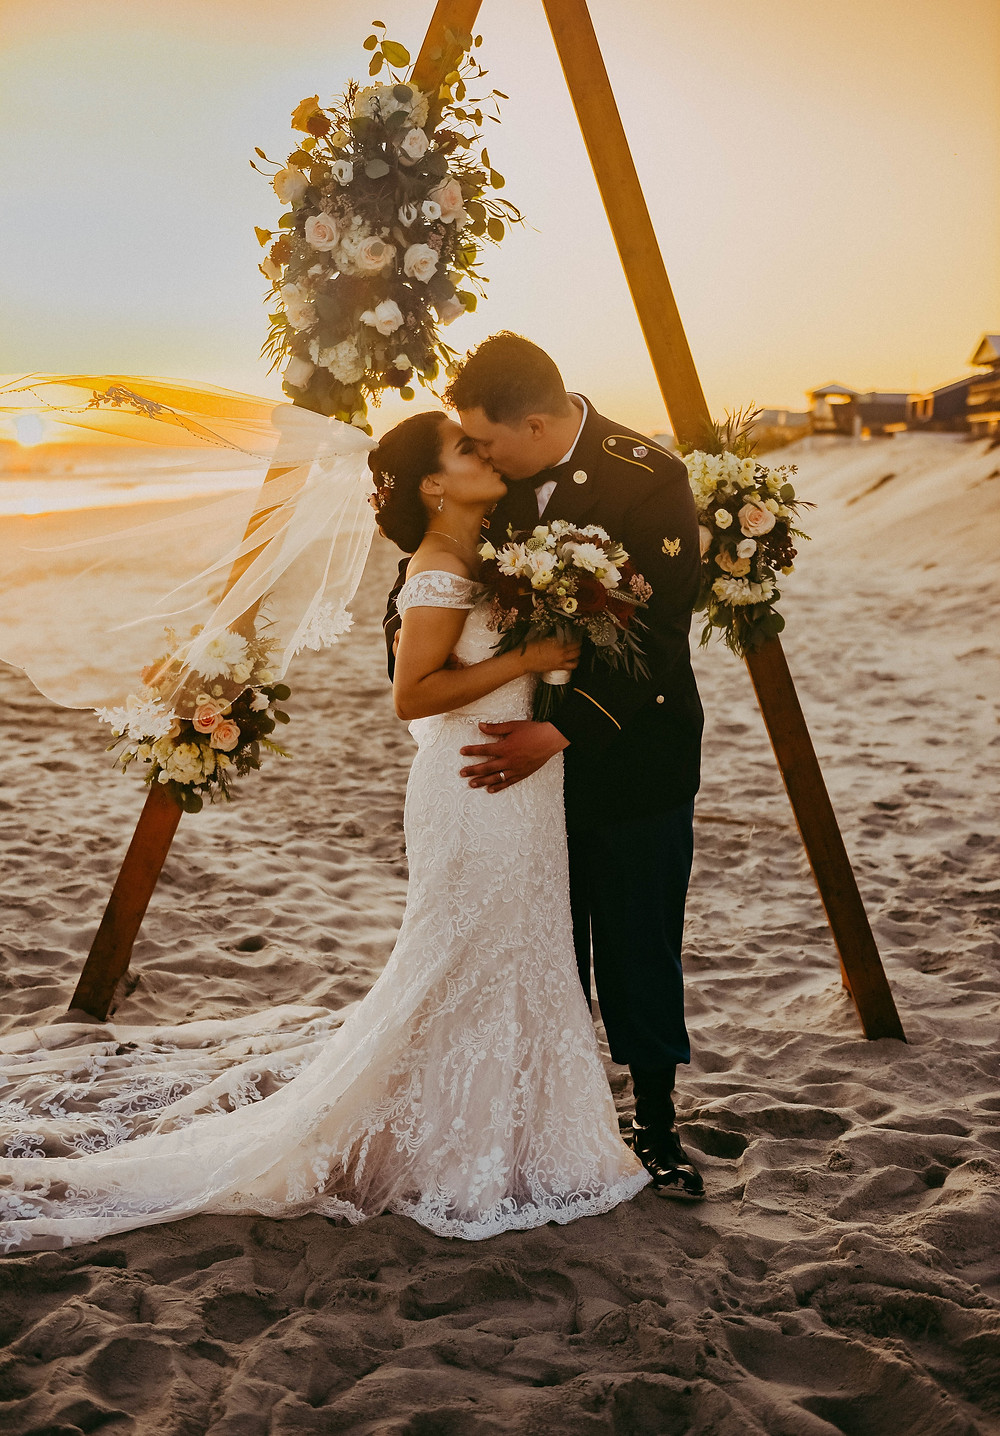 Bride and Groom kissing on beach at sunset after their oak island wedding at the beach